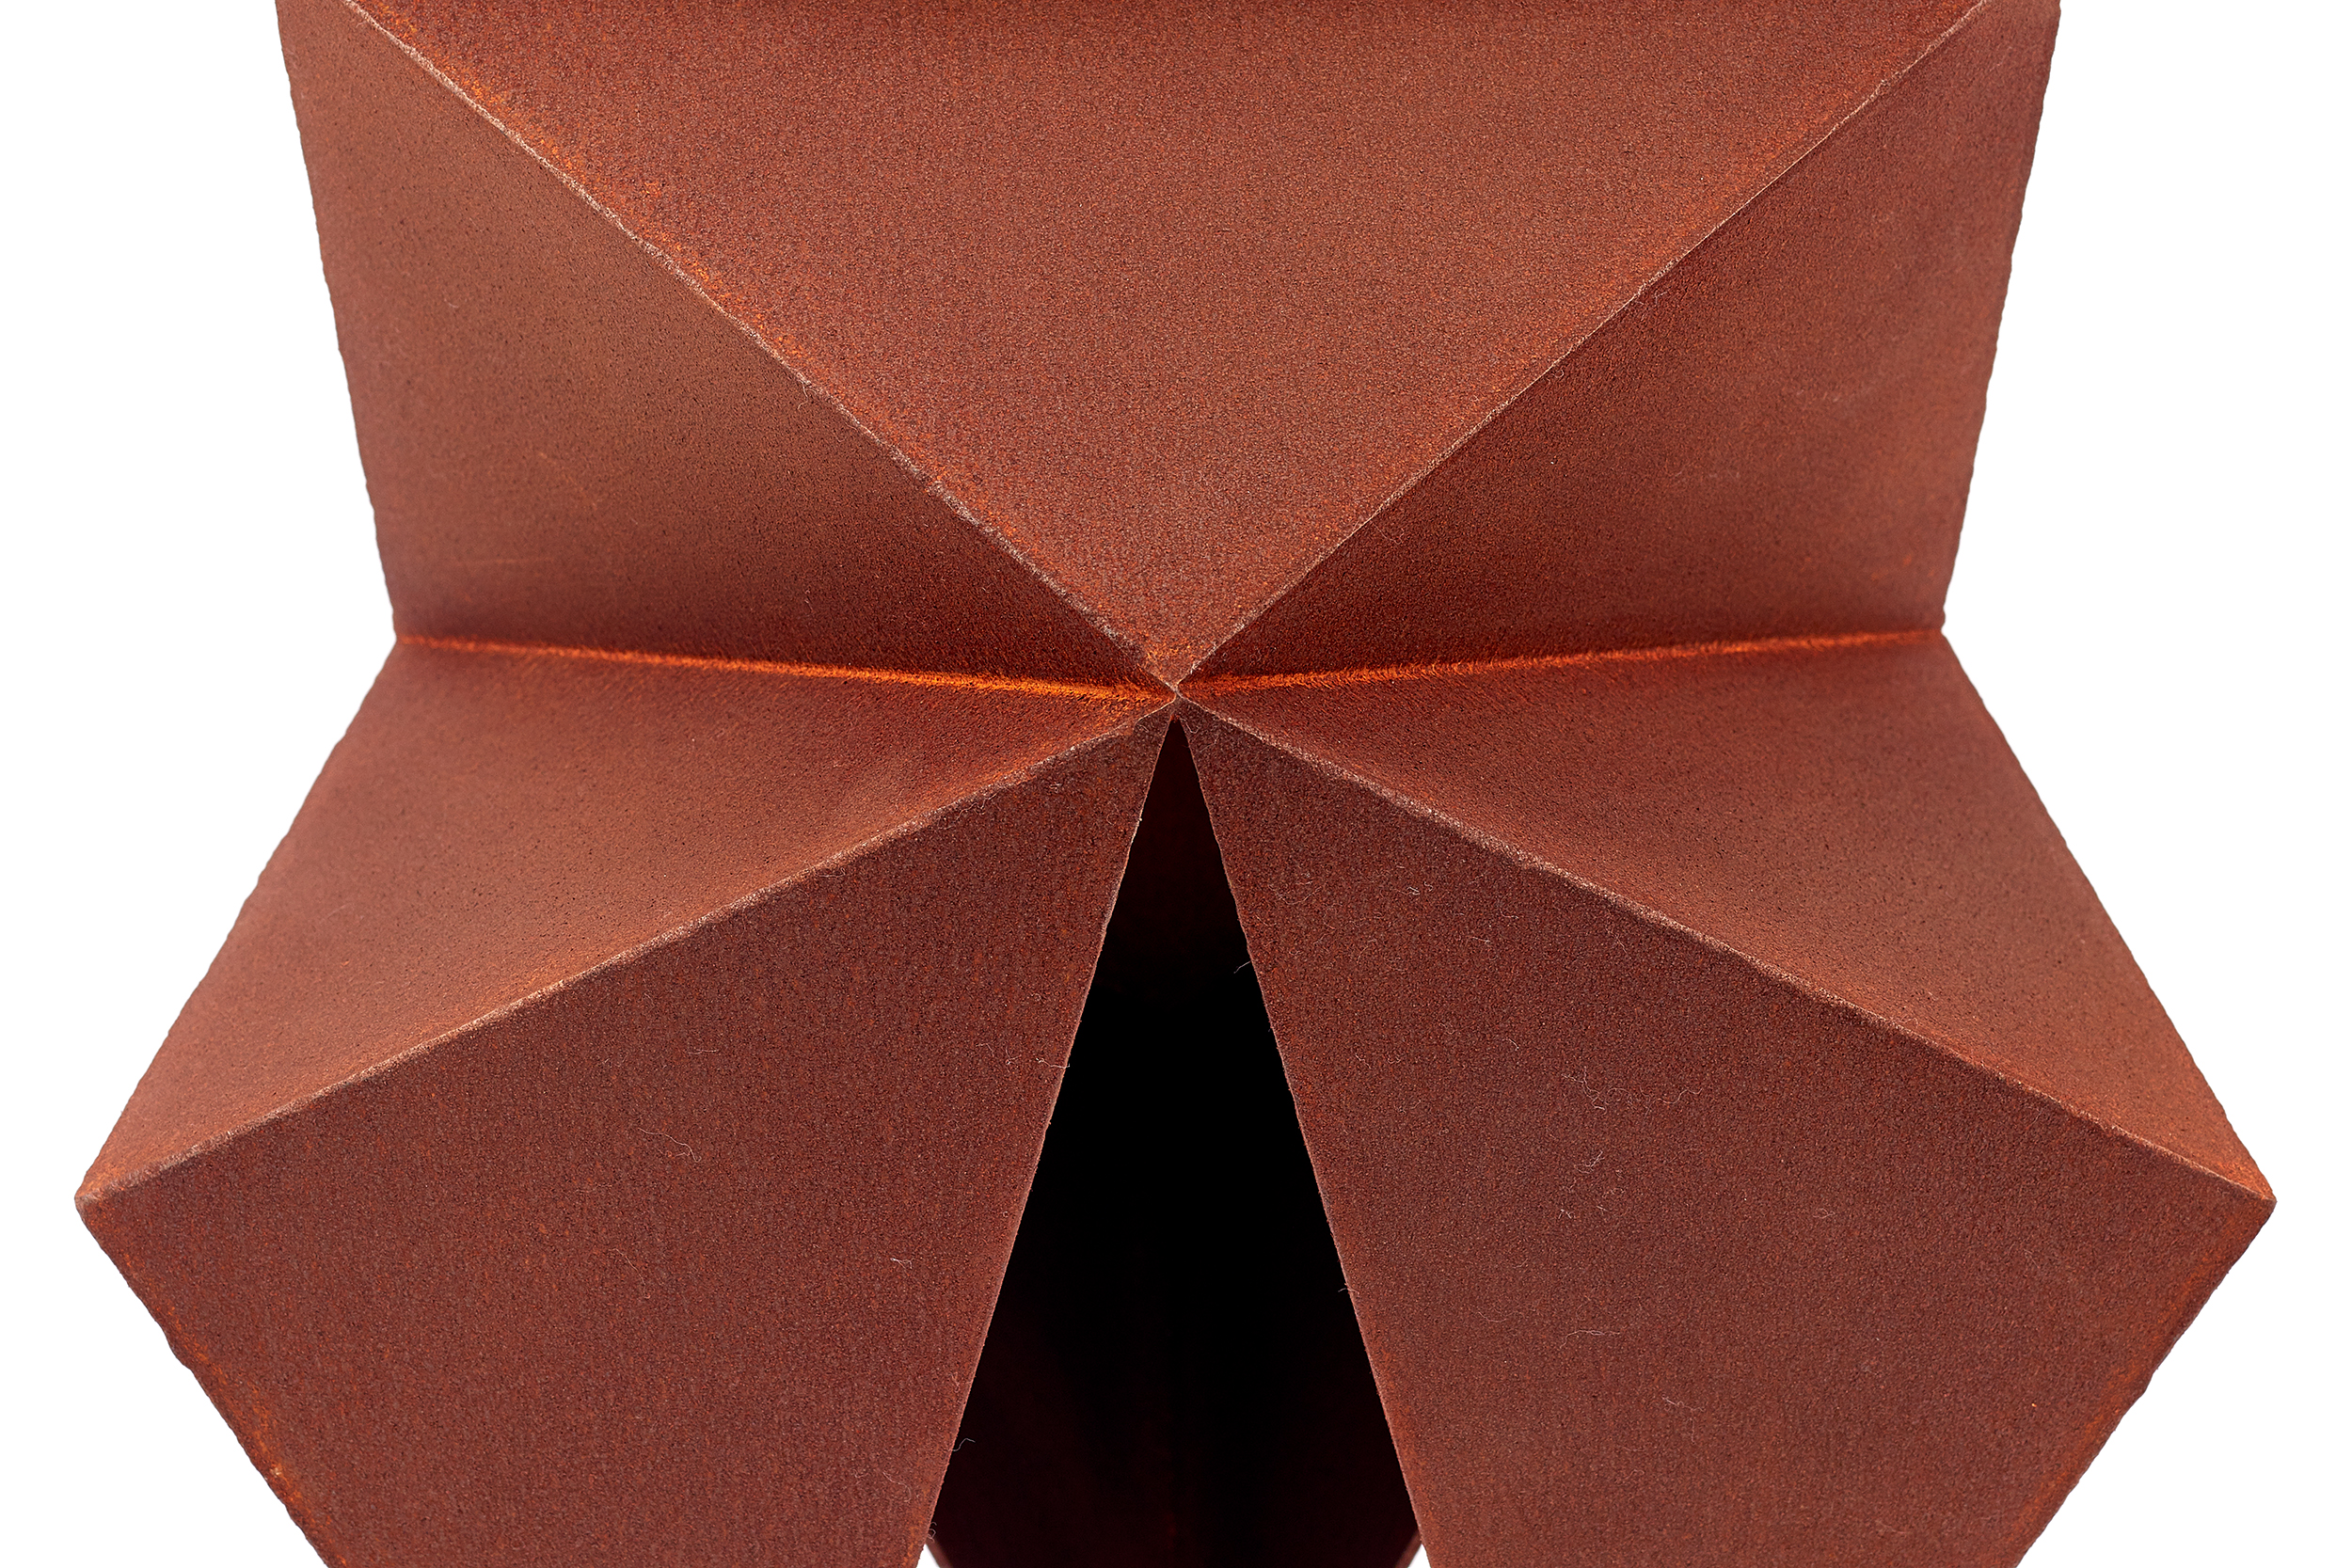 2018_04_08_will_nash_corten_isosceles_006_int_web.jpg